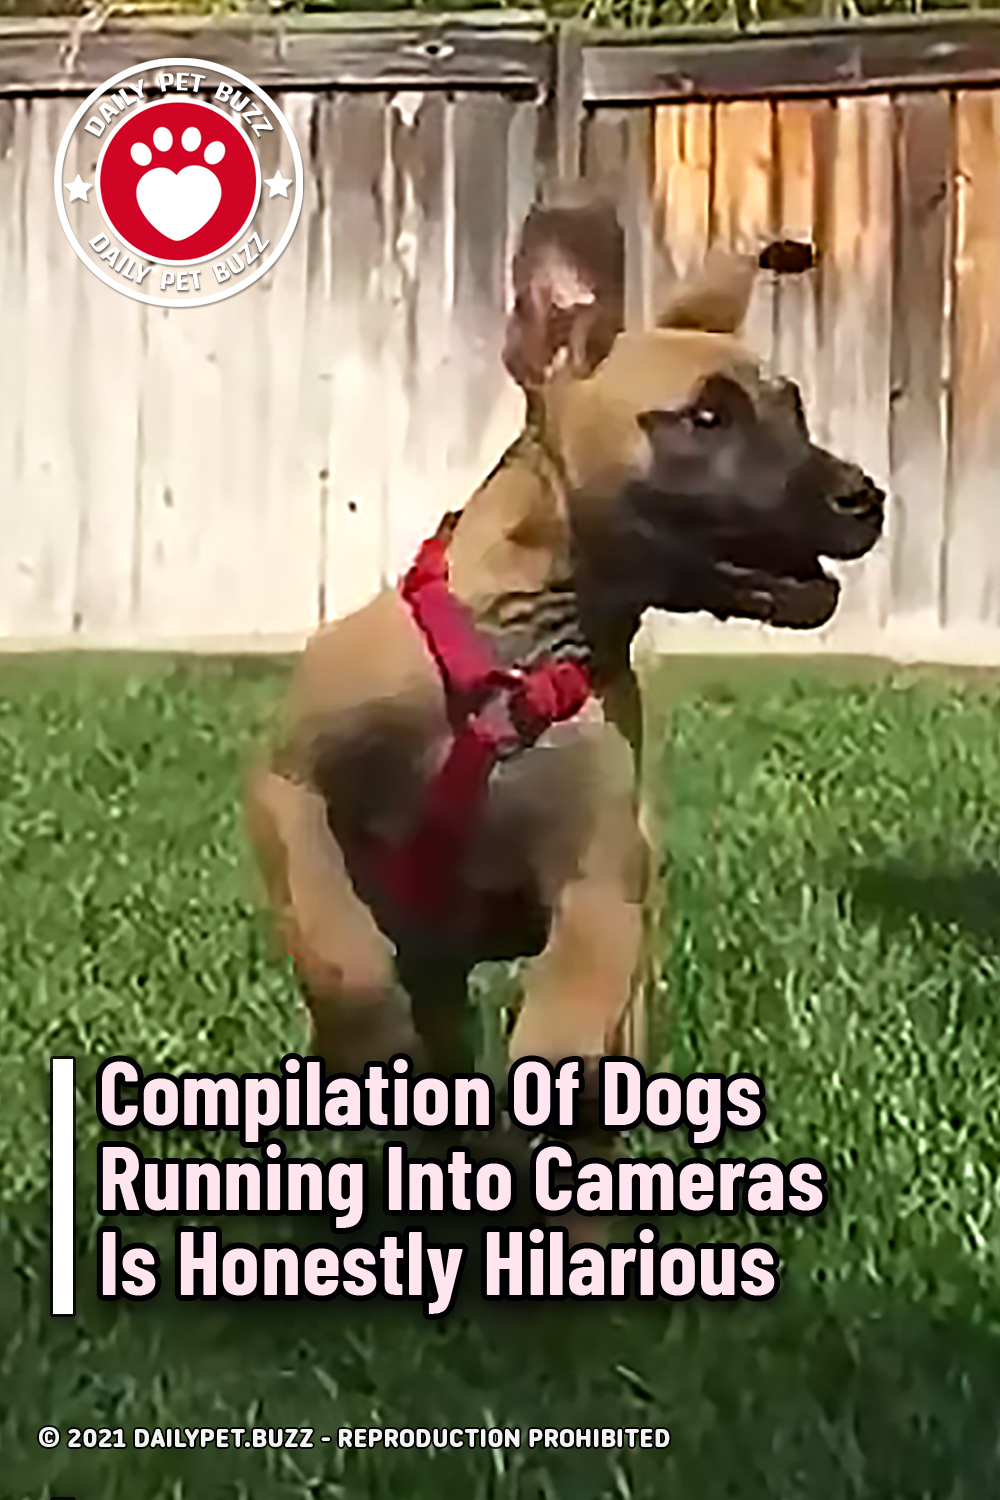 Compilation Of Dogs Running Into Cameras Is Honestly Hilarious